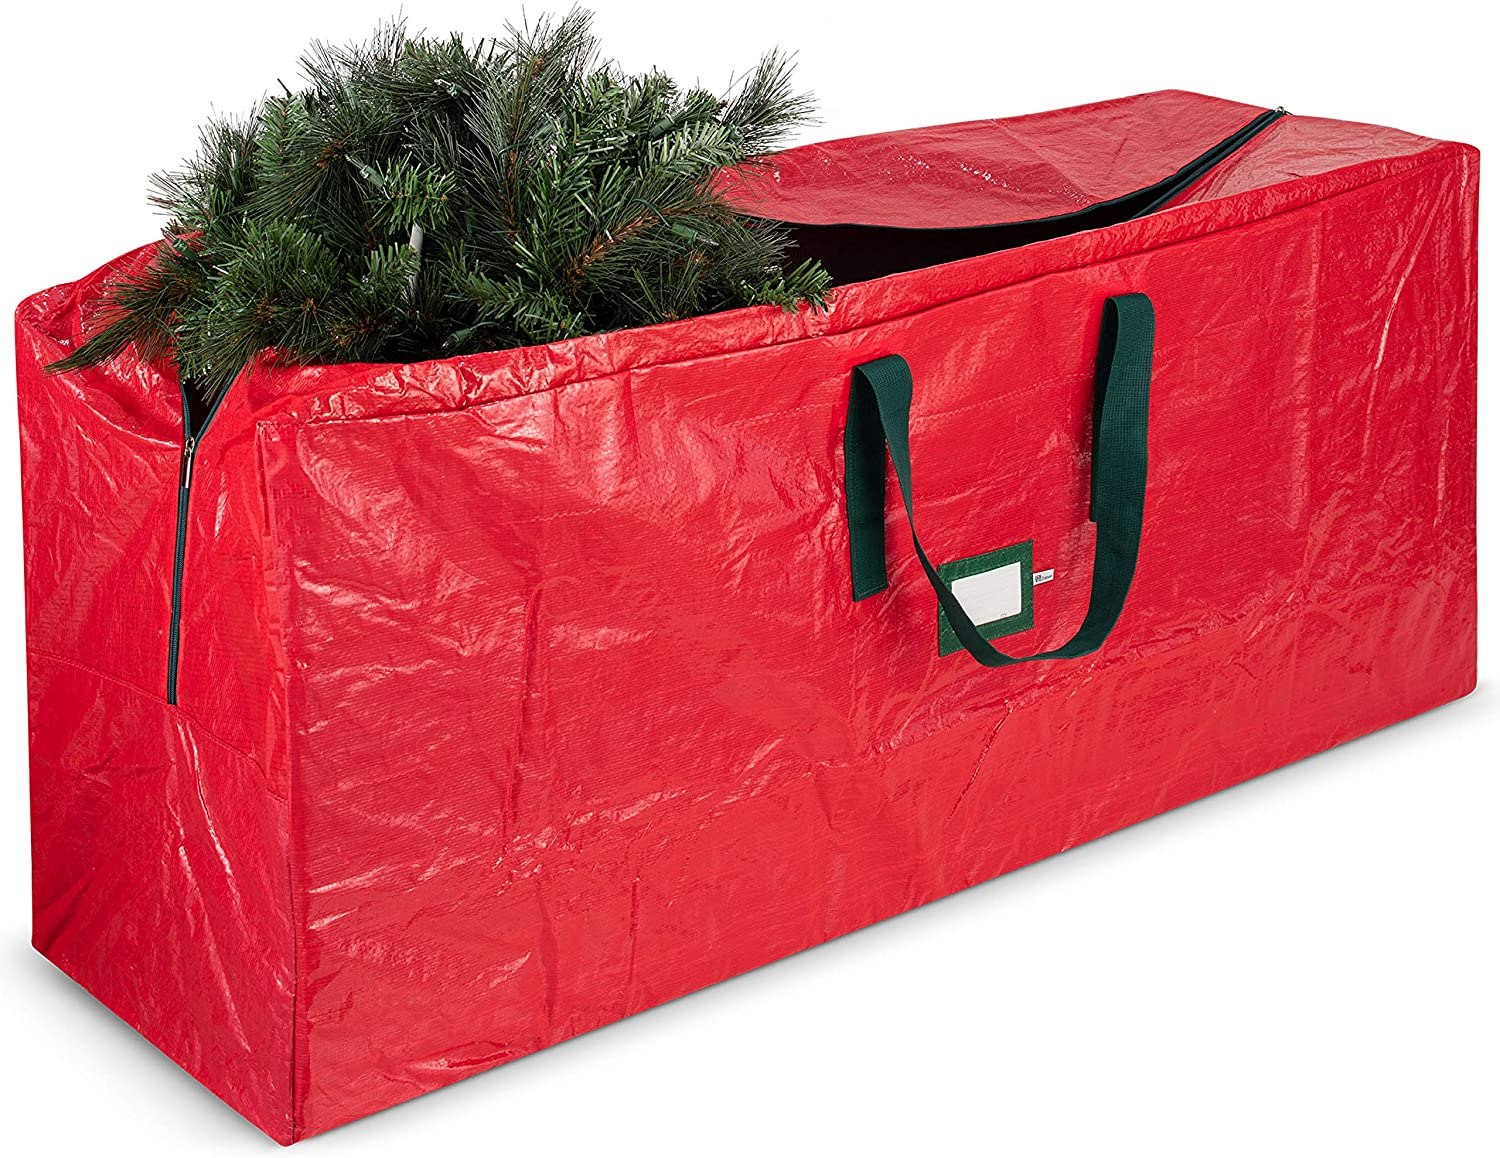 Durable Quality Christmas Tree Storage Bag-Fits Trees Up to 6 Feet Tall White